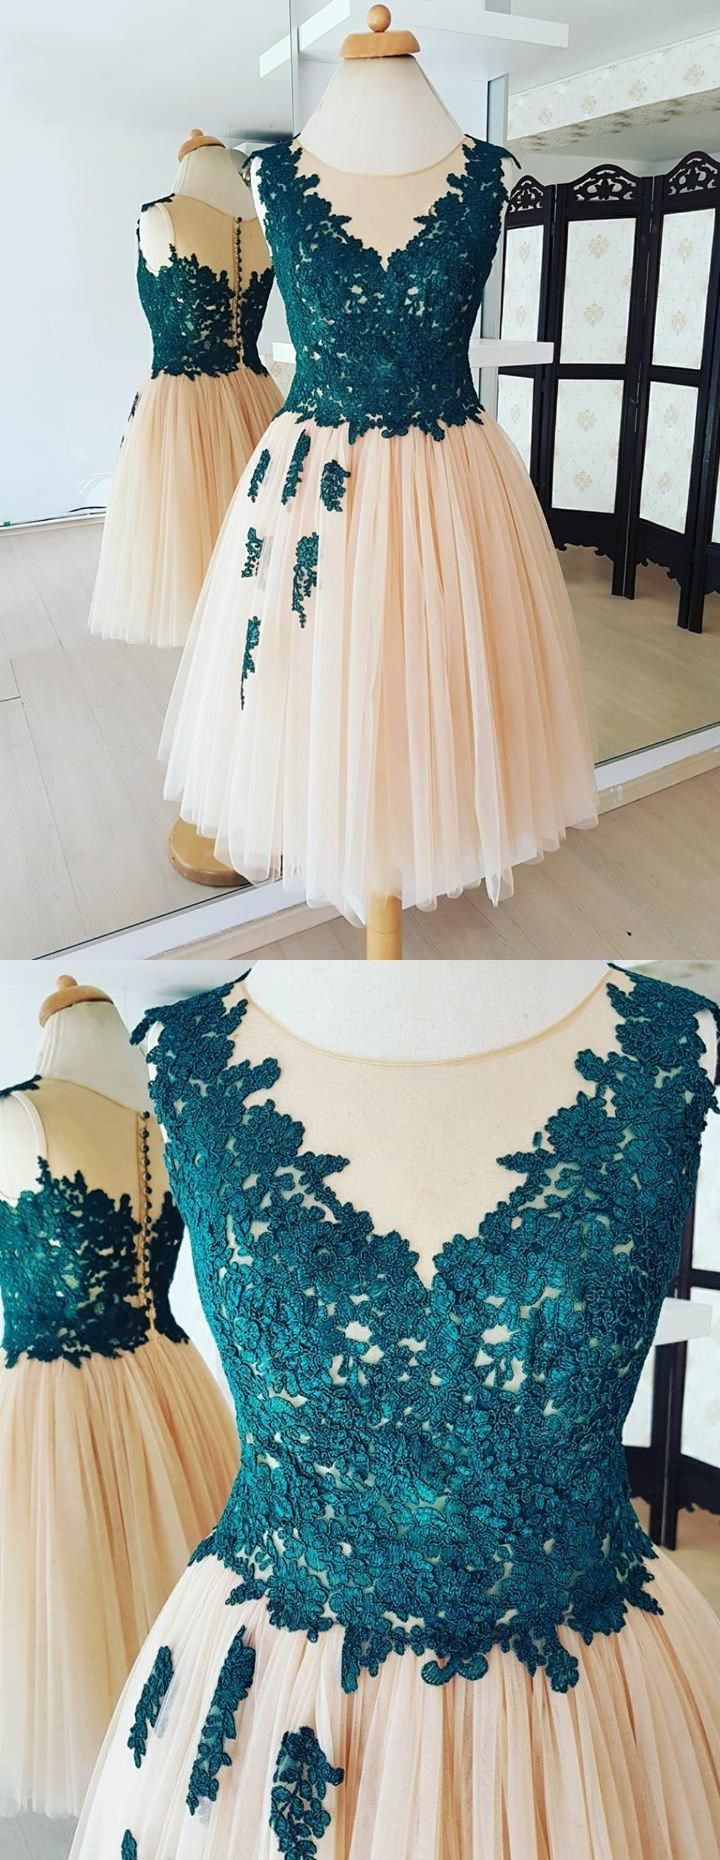 Chic homecoming dresses aline appliques tulle short prom dress